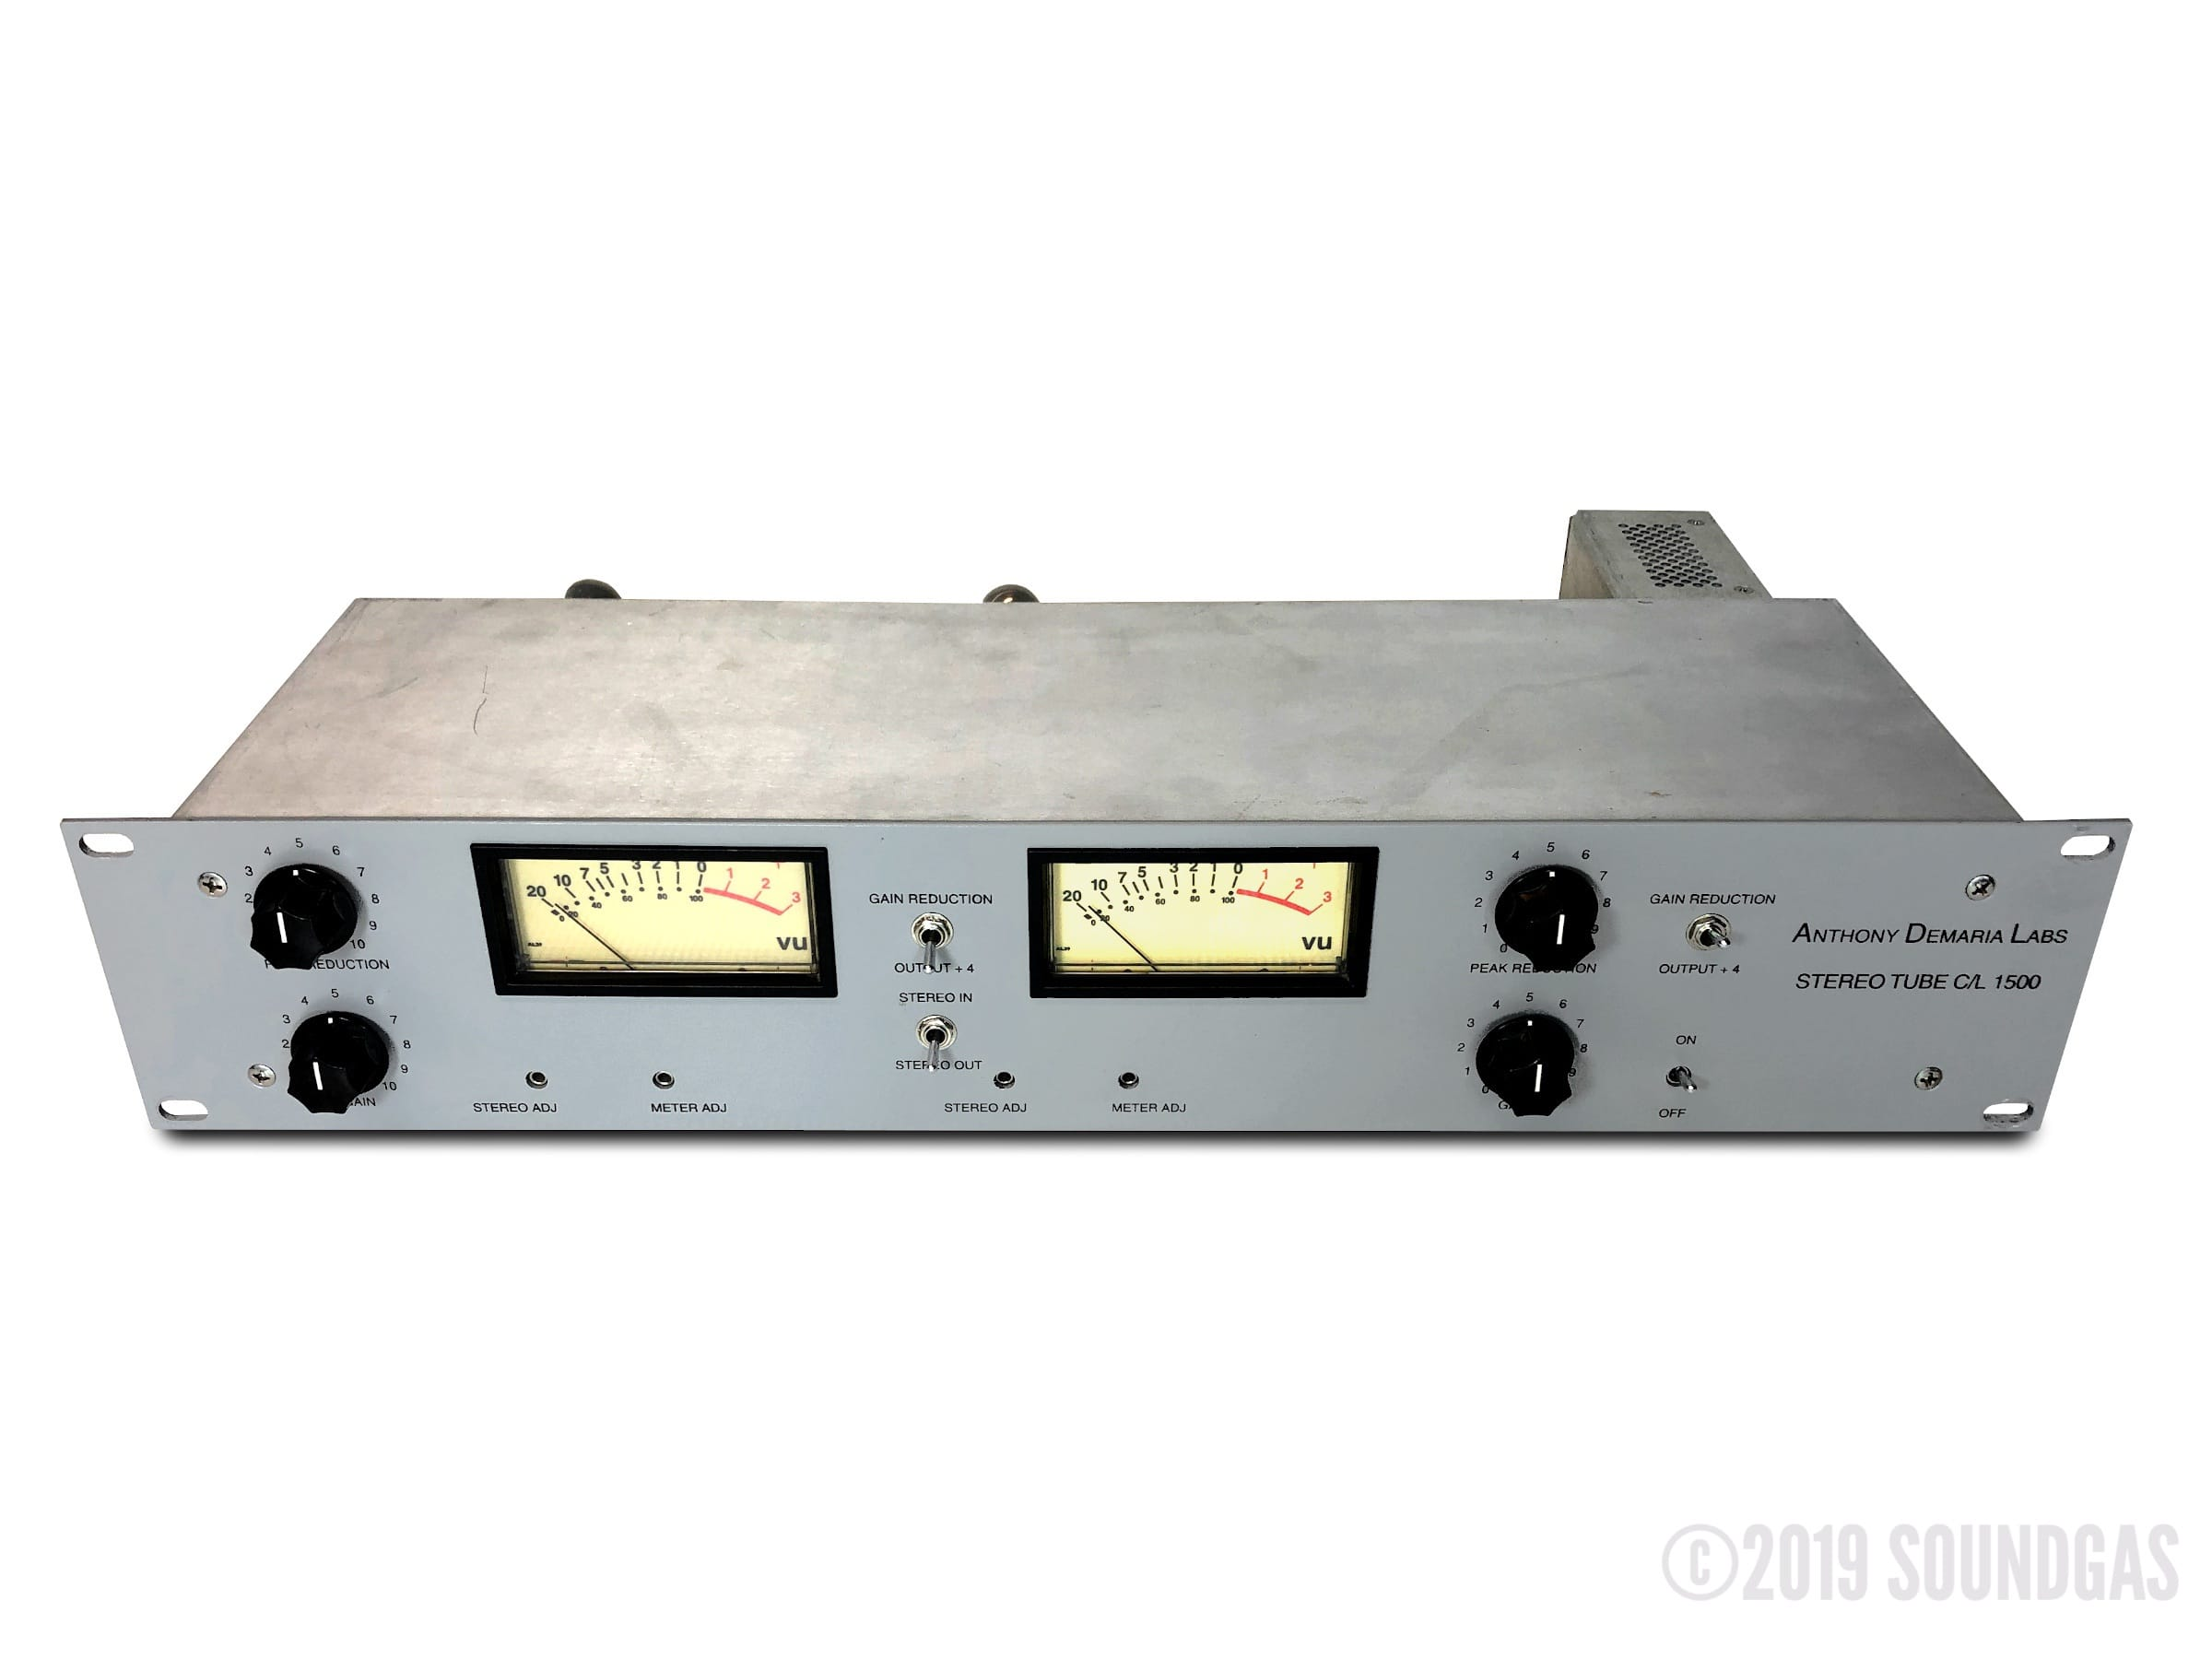 Anthony-Demaria-Labs-Stereo-Tube-Compressor-Limiter-Cover-2